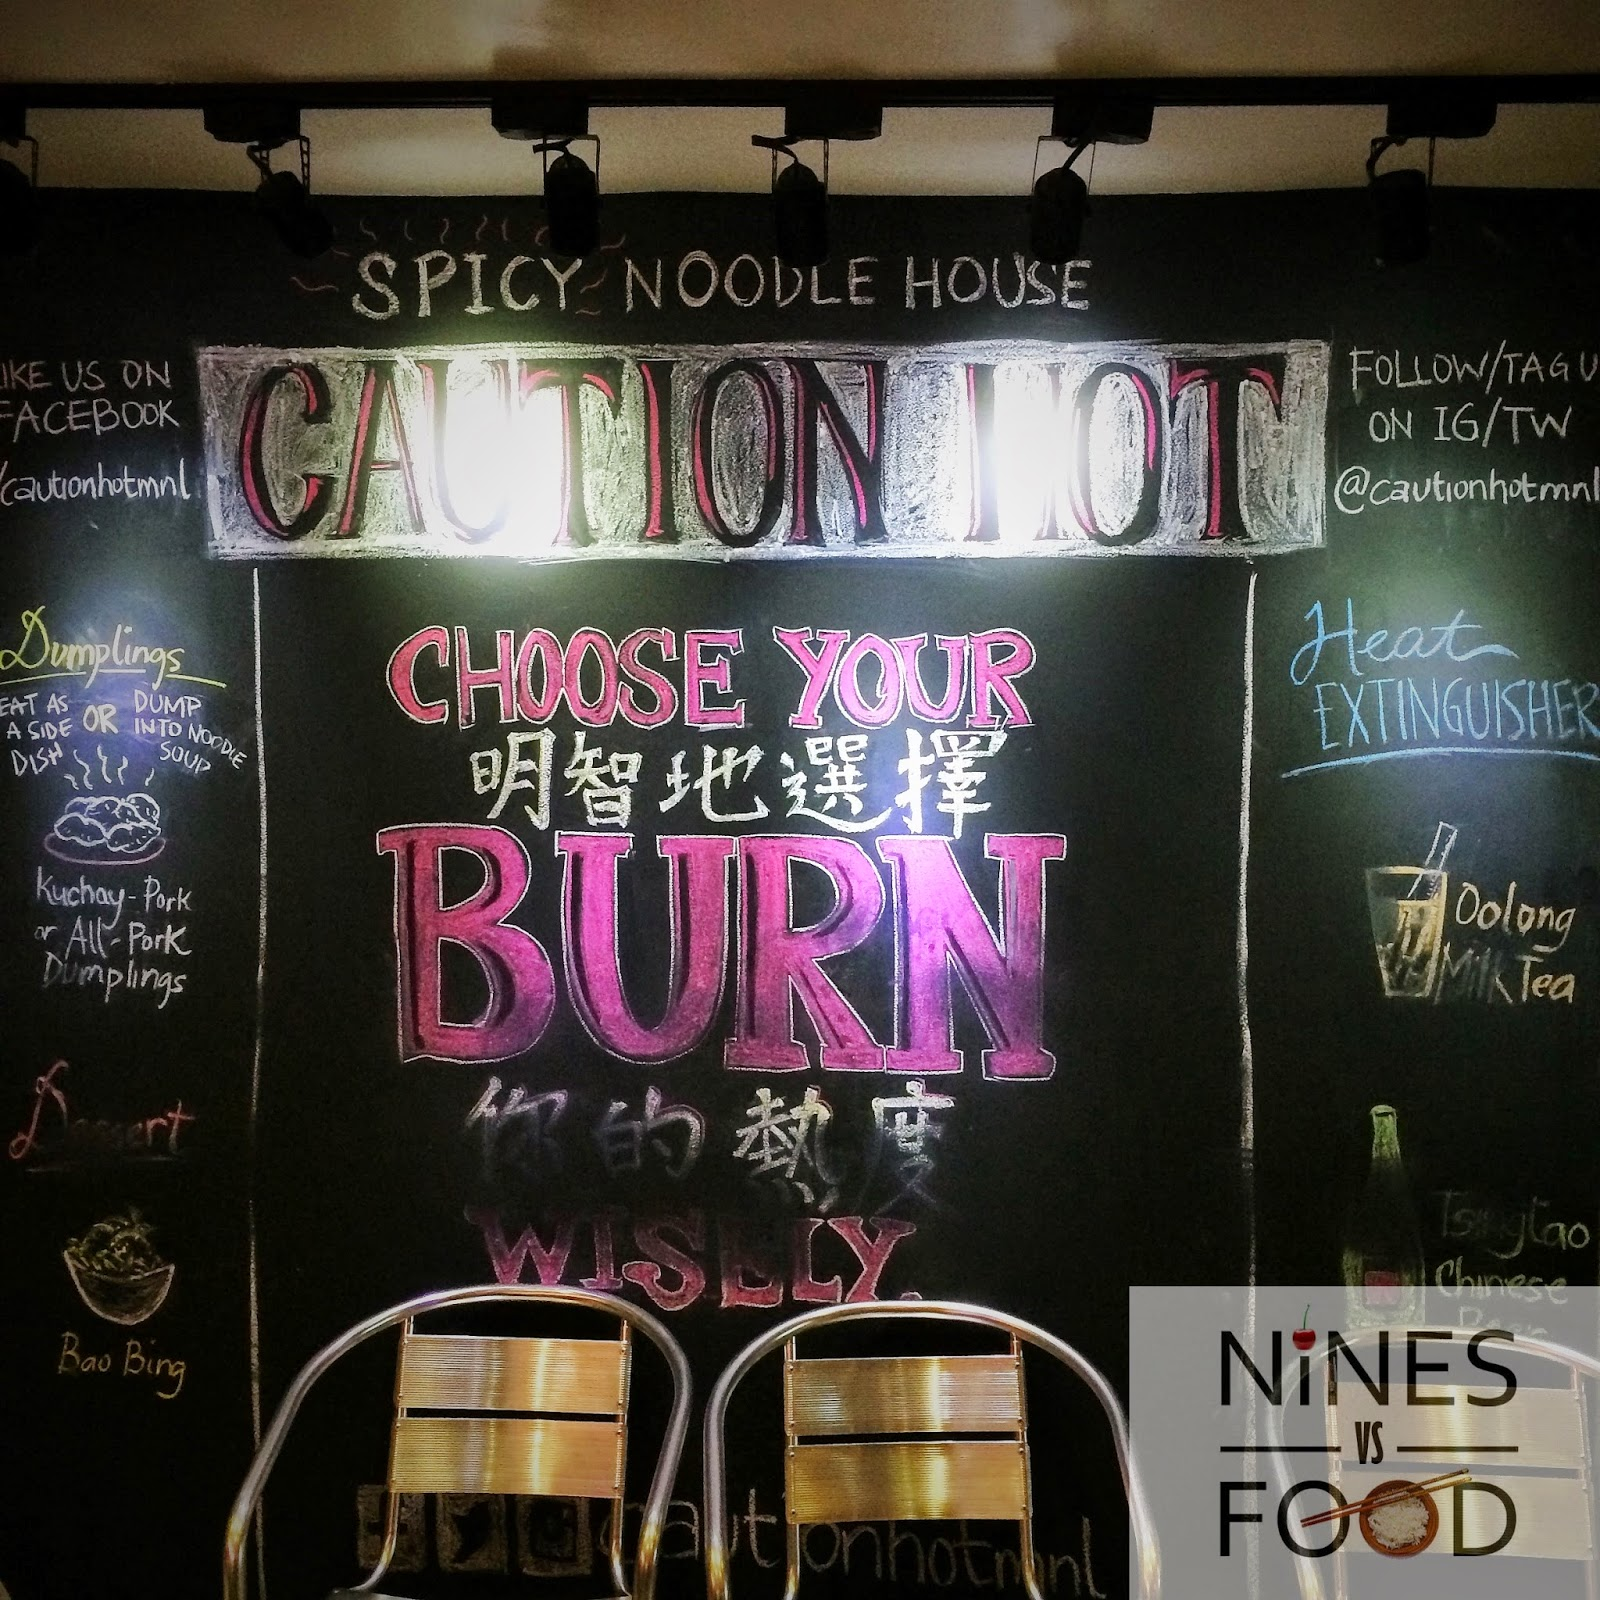 Nines vs. Food - Caution Hot! Manila-2.jpg